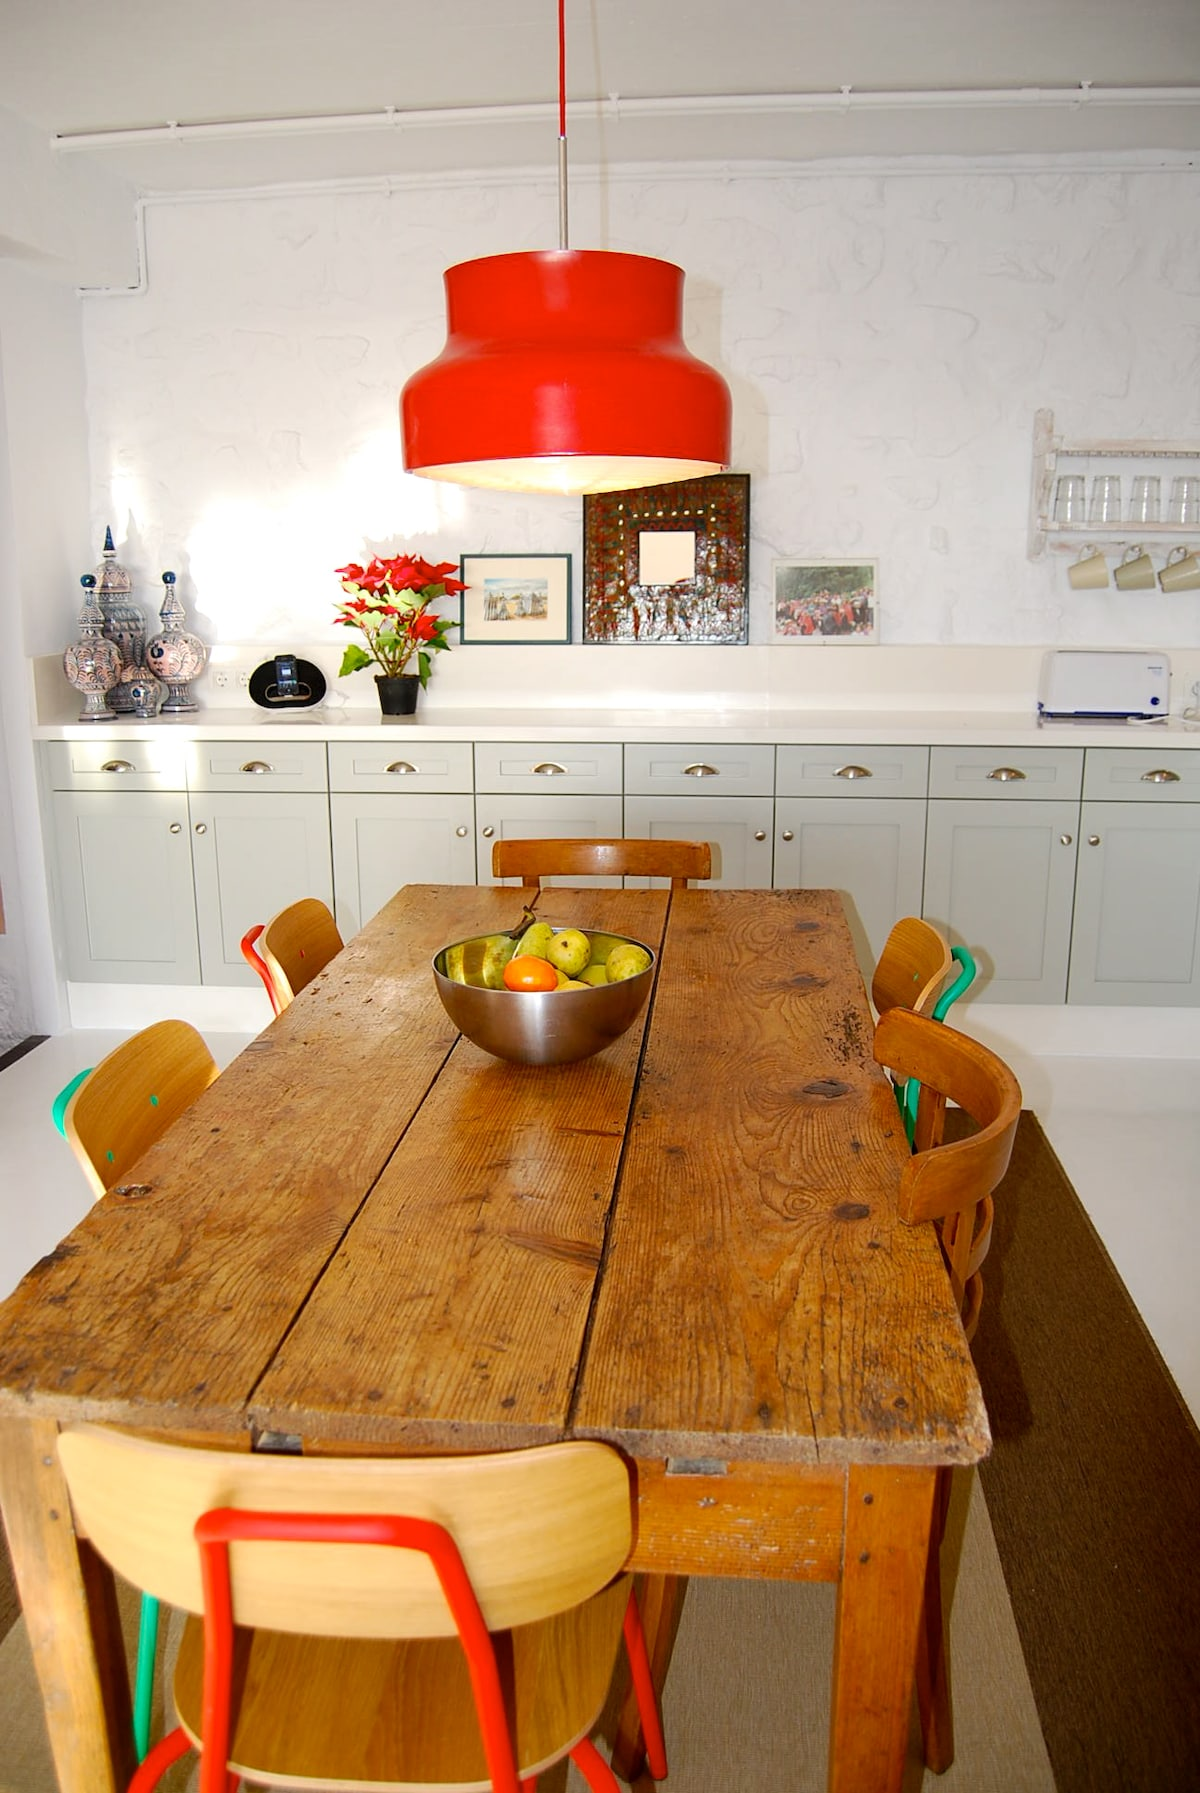 An old farm table and the red 50's lamp above create a relaxed mood